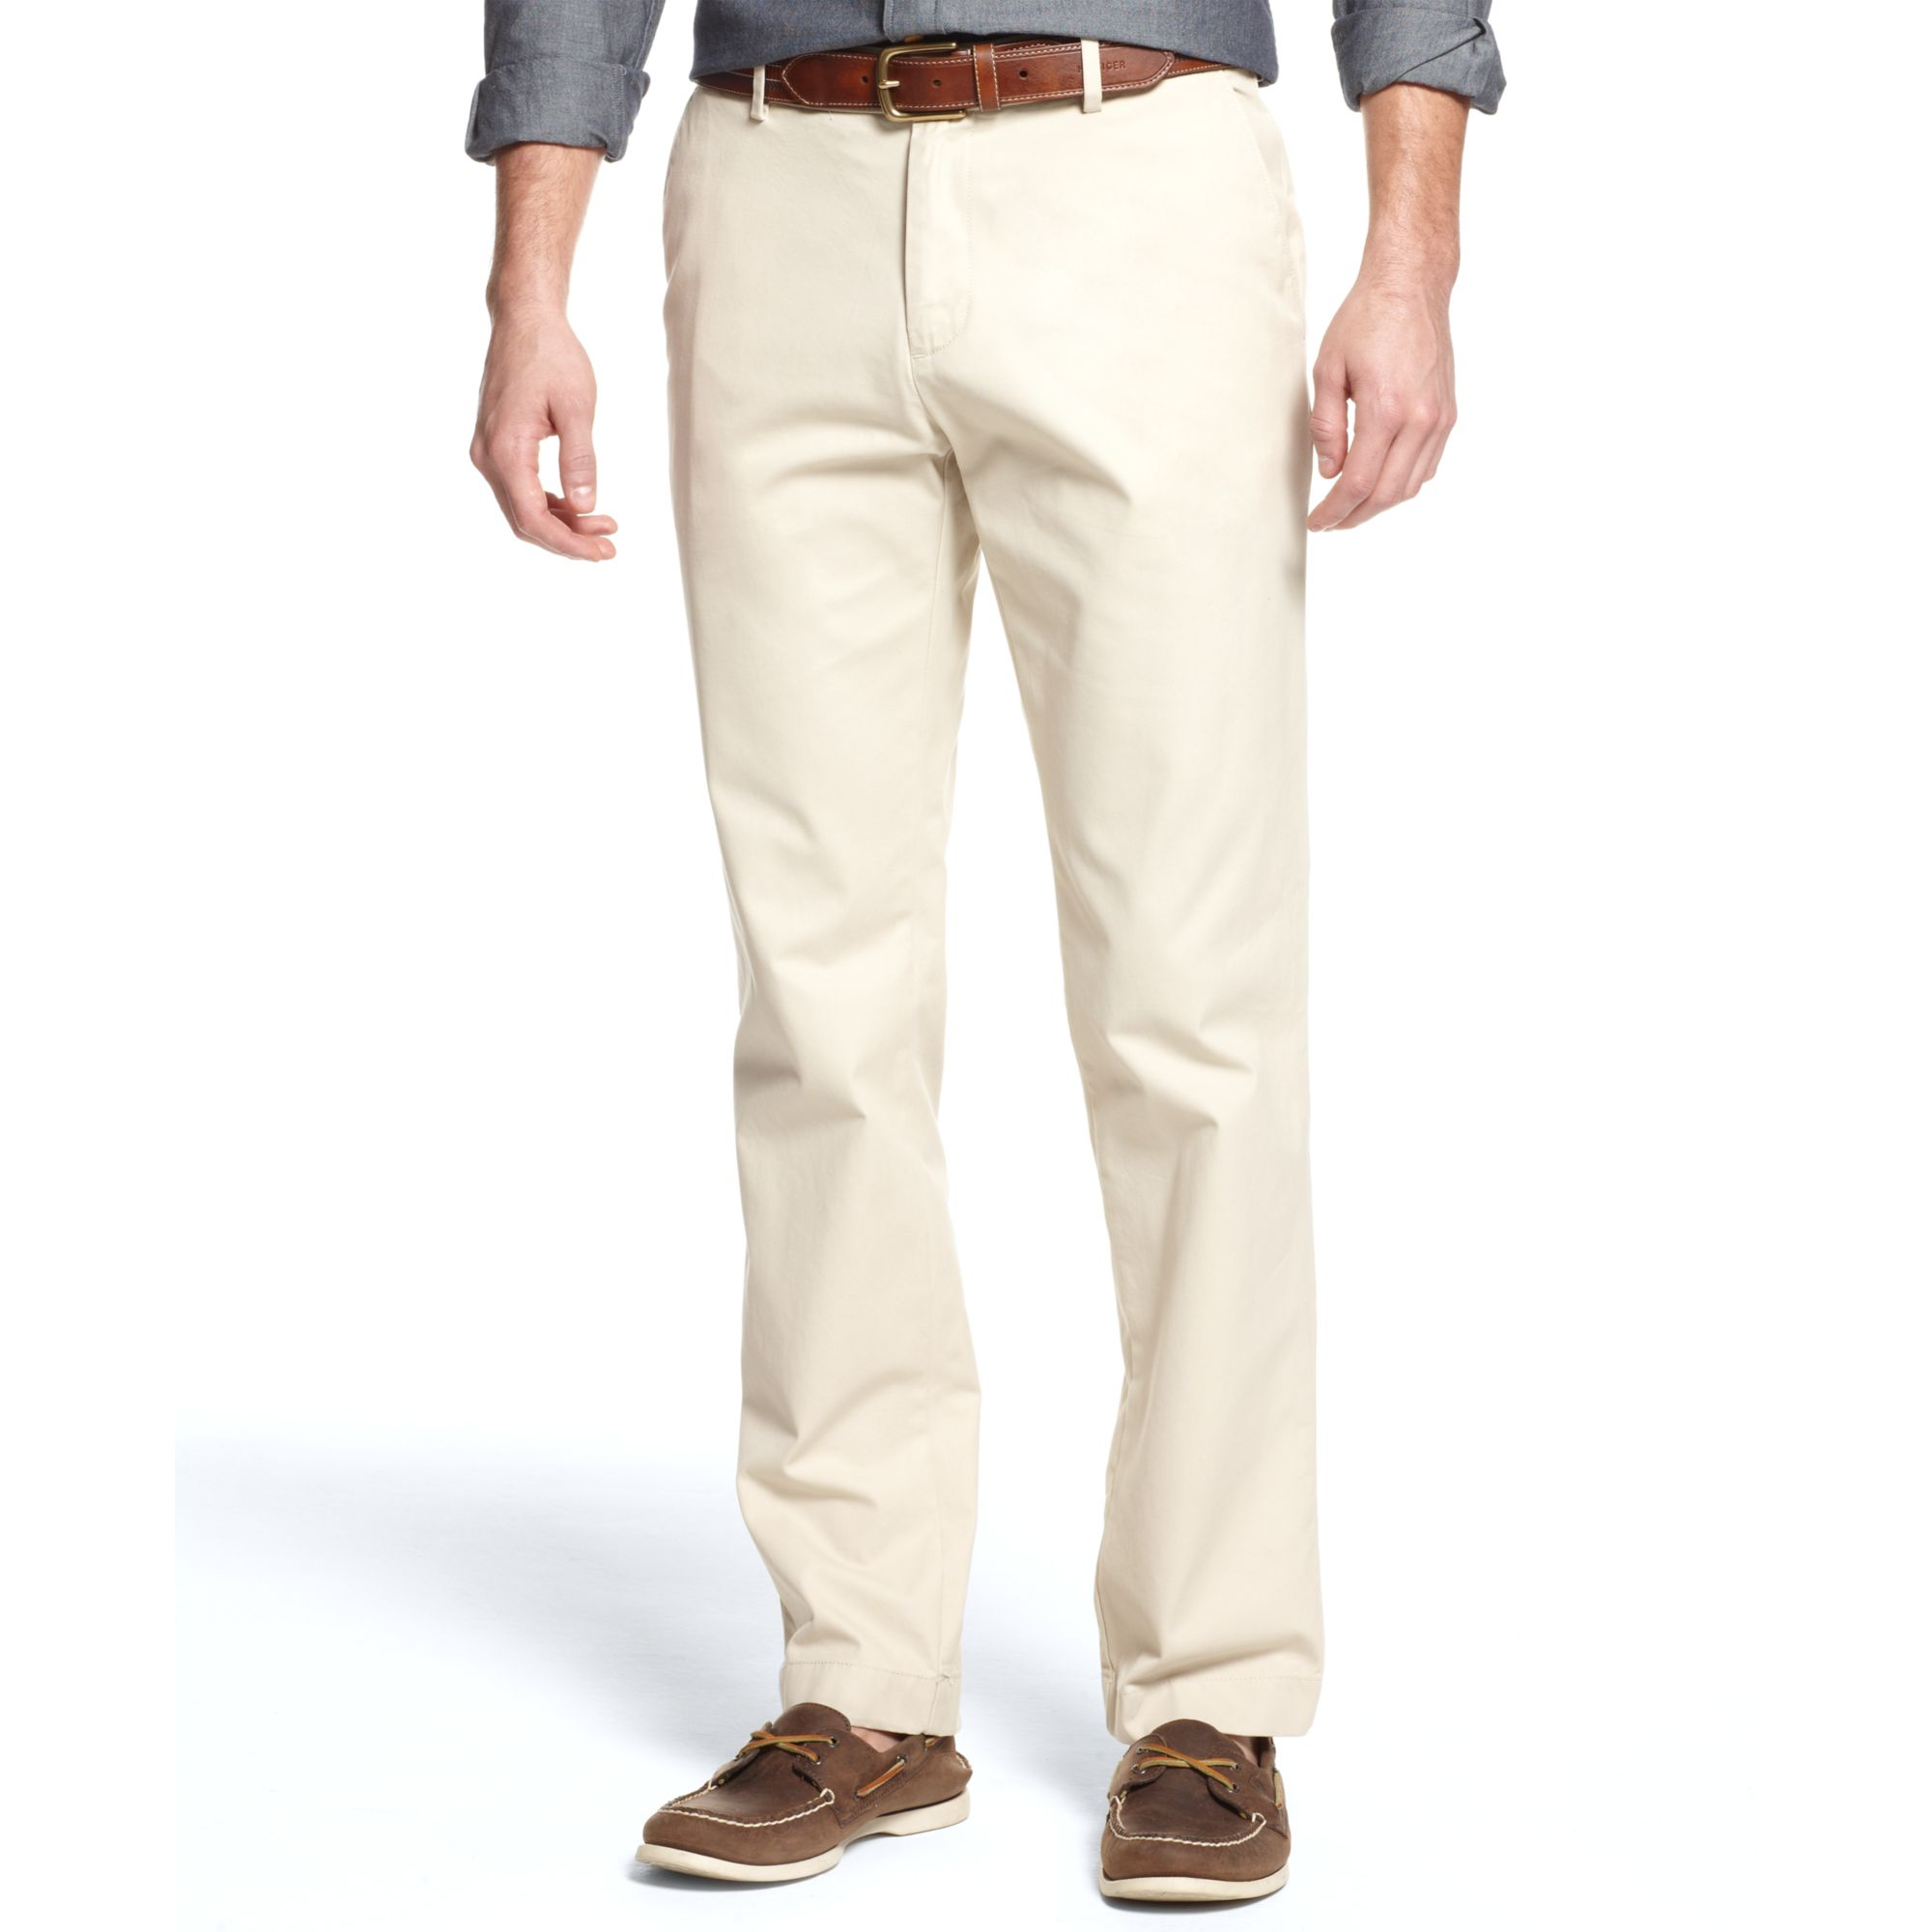 d1580baad Tommy Hilfiger College University Chino Pants in Natural for Men - Lyst